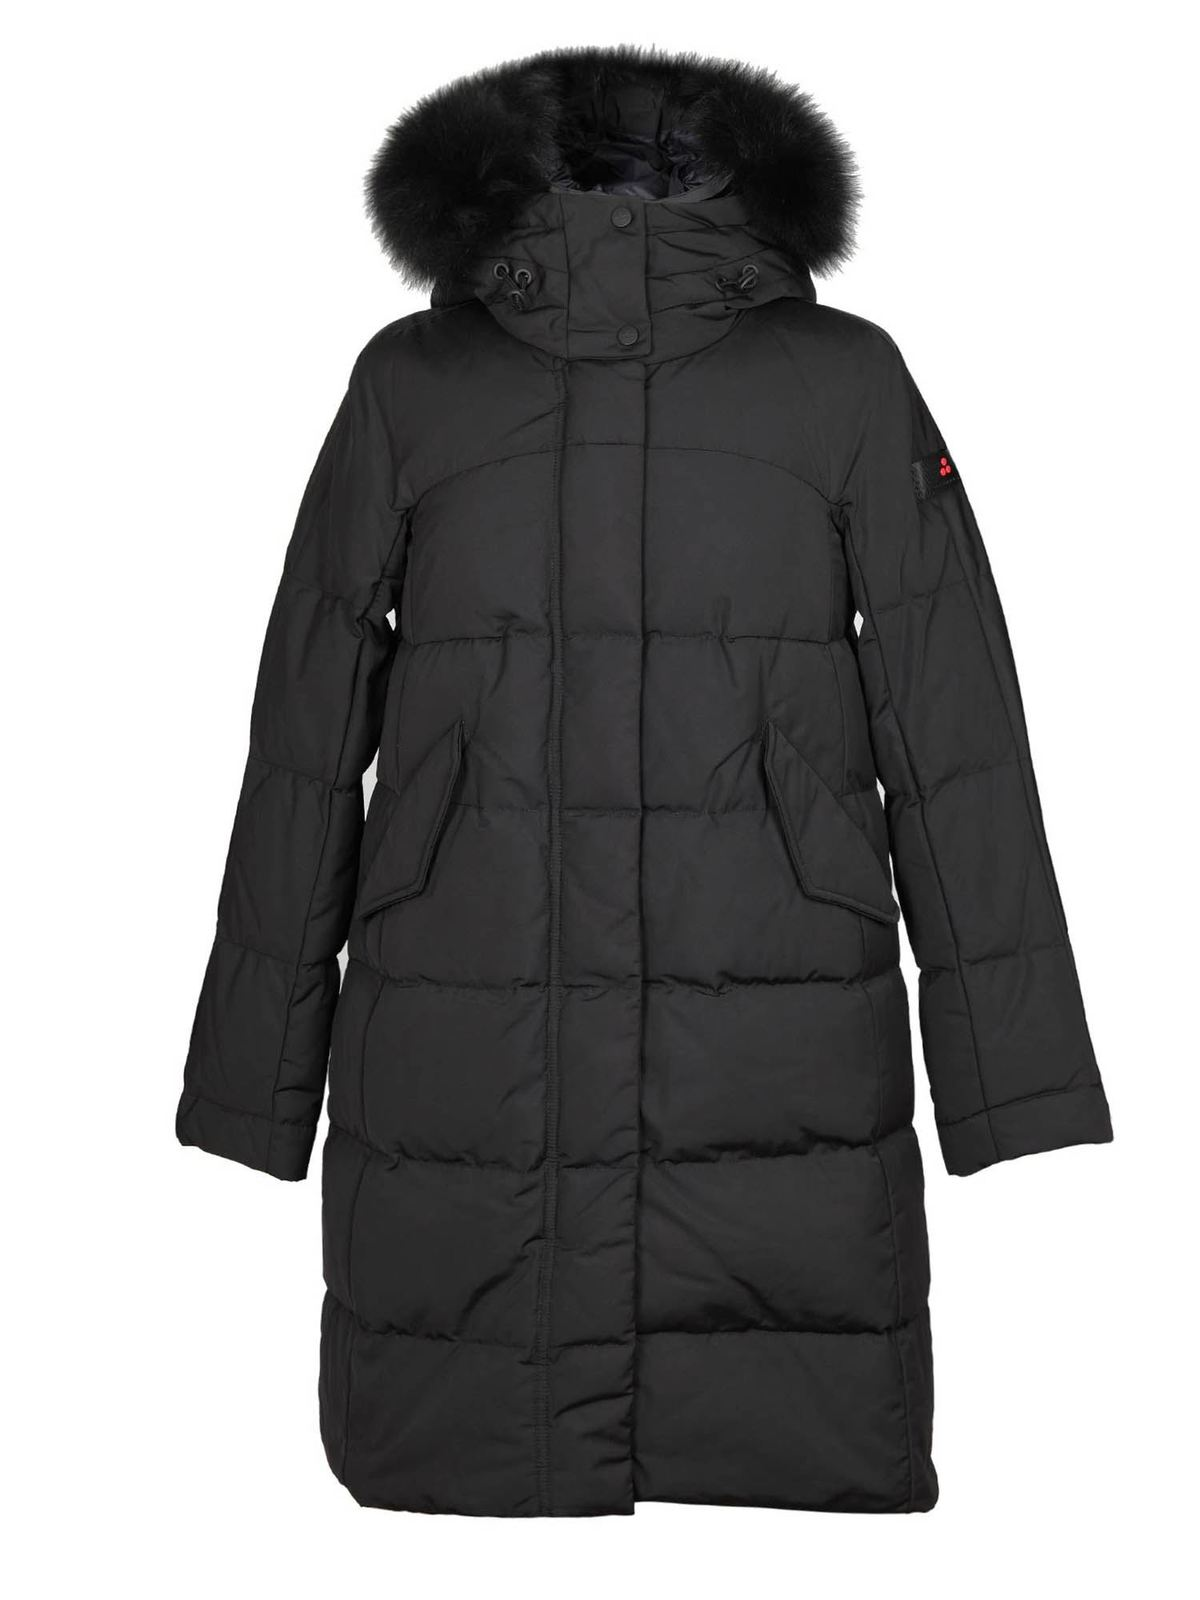 Peuterey QUILTED OLONG PARKA IN BLACK